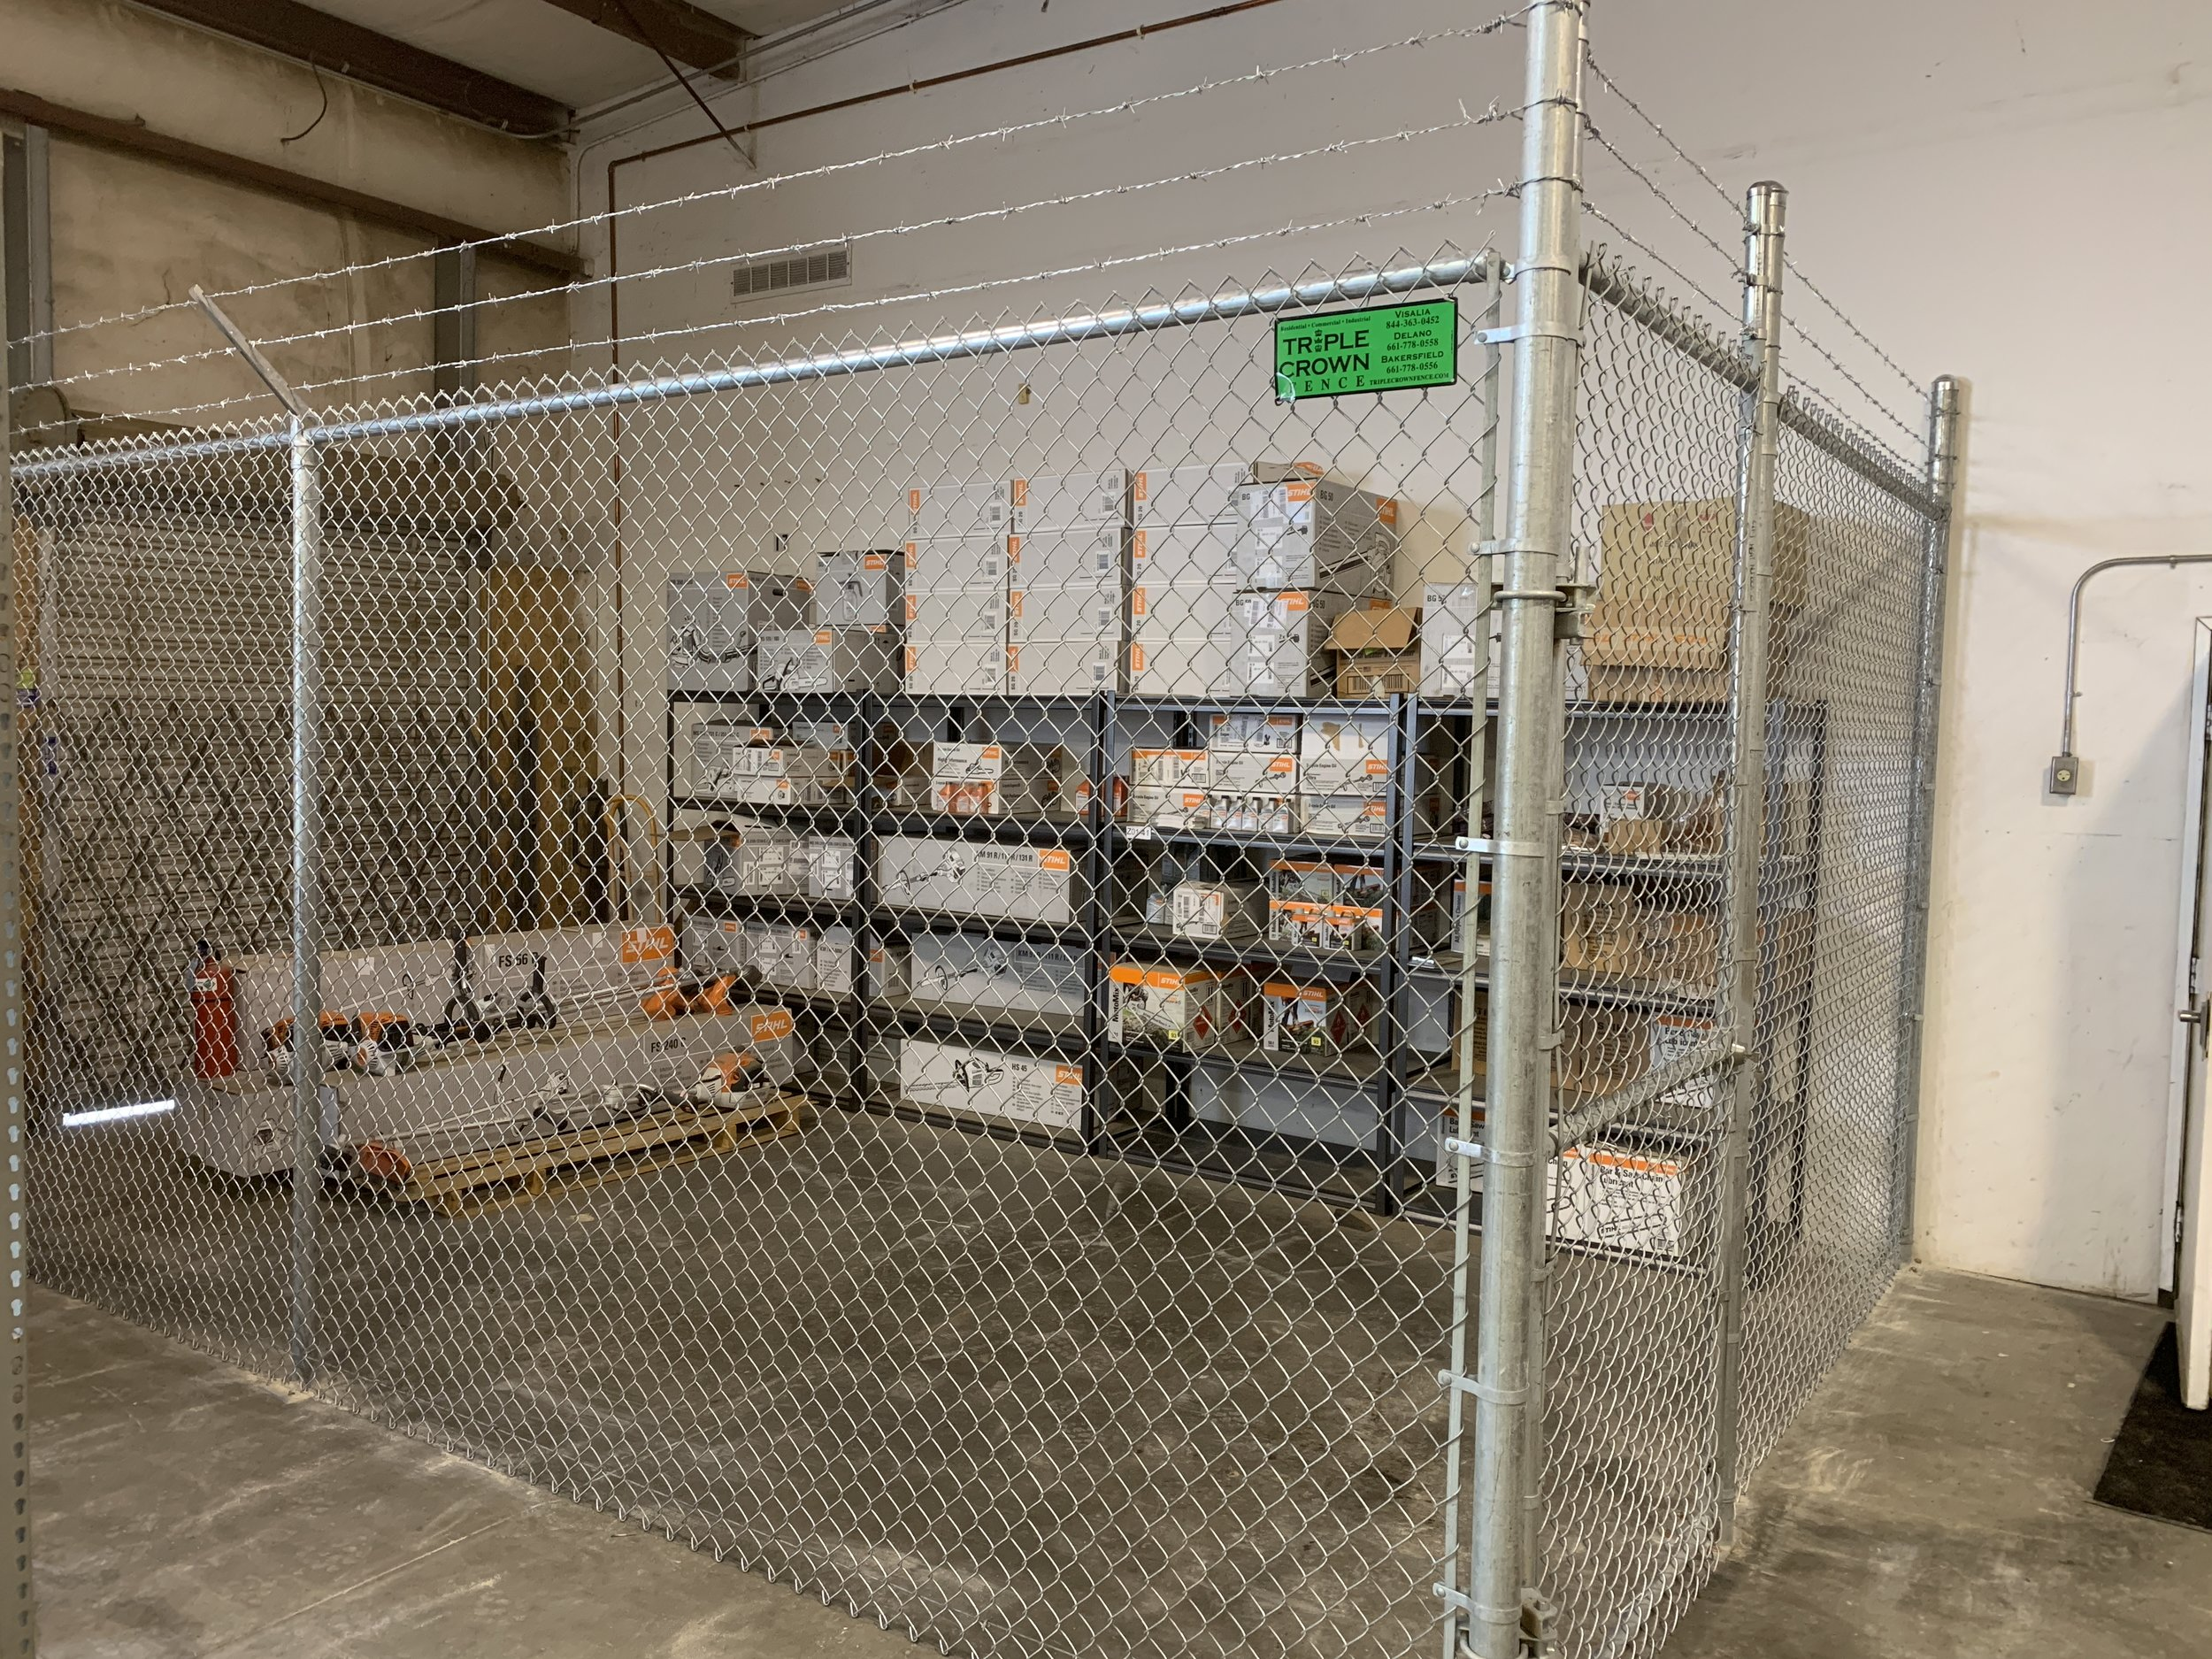 Retail Merchandise Cage with Barbed Wire